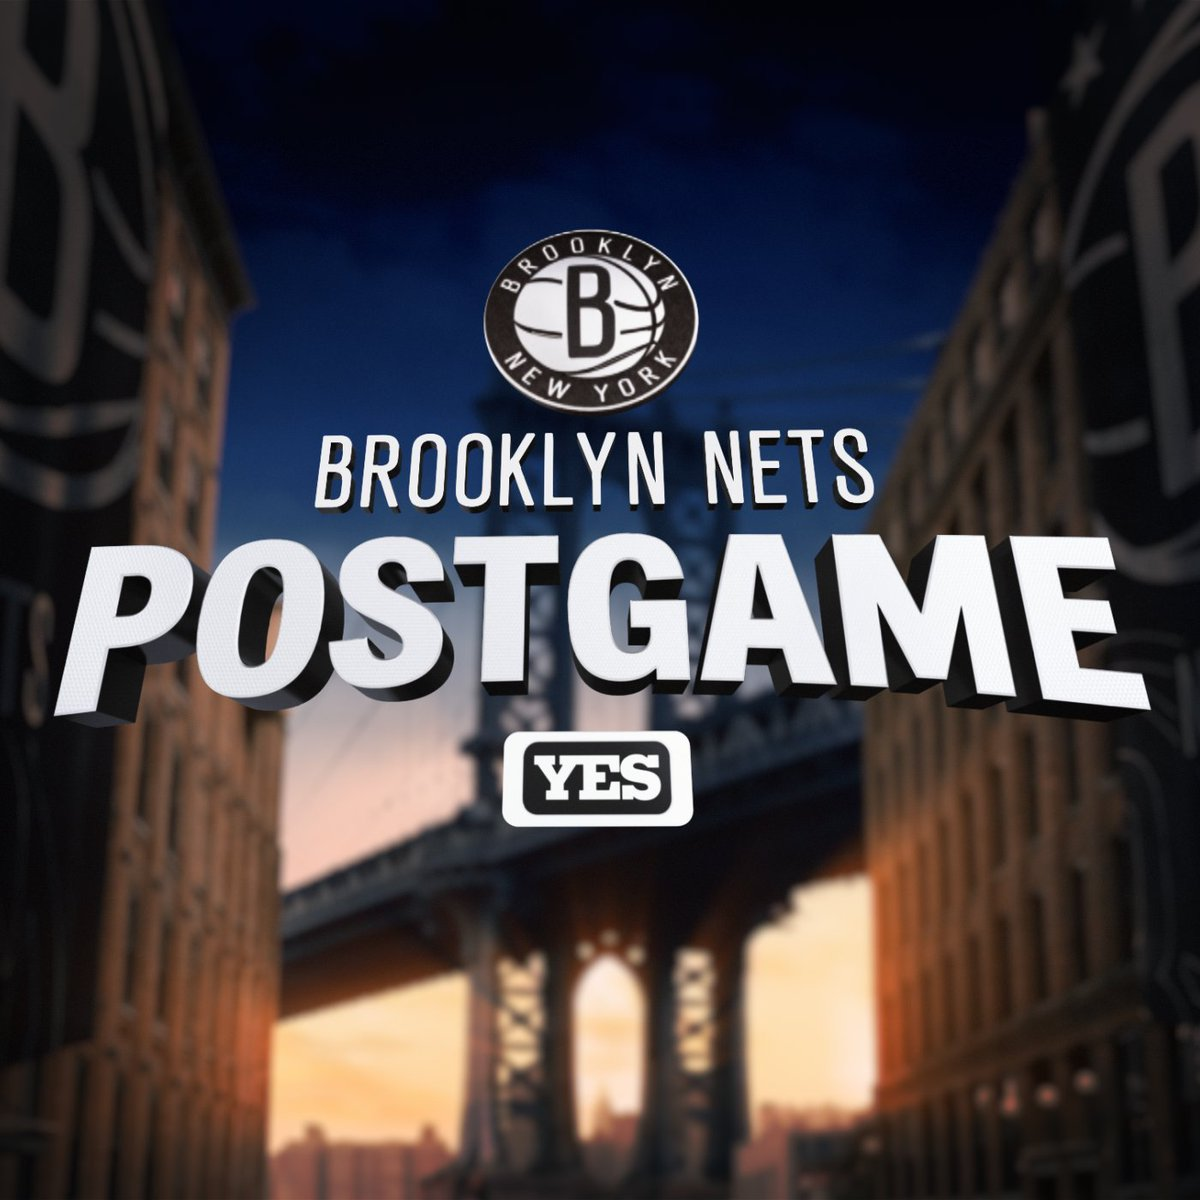 The @BrooklynNets won a crazy game last night. And you can re-live it all with the NEW Nets Postgame Podcast, complete with analysis and comments from: 🏀Kyrie Irving 🏀Kenny Atkinson 🏀Jarrett Allen 🏀Joe Harris Podcast: apple.co/32eFXBX